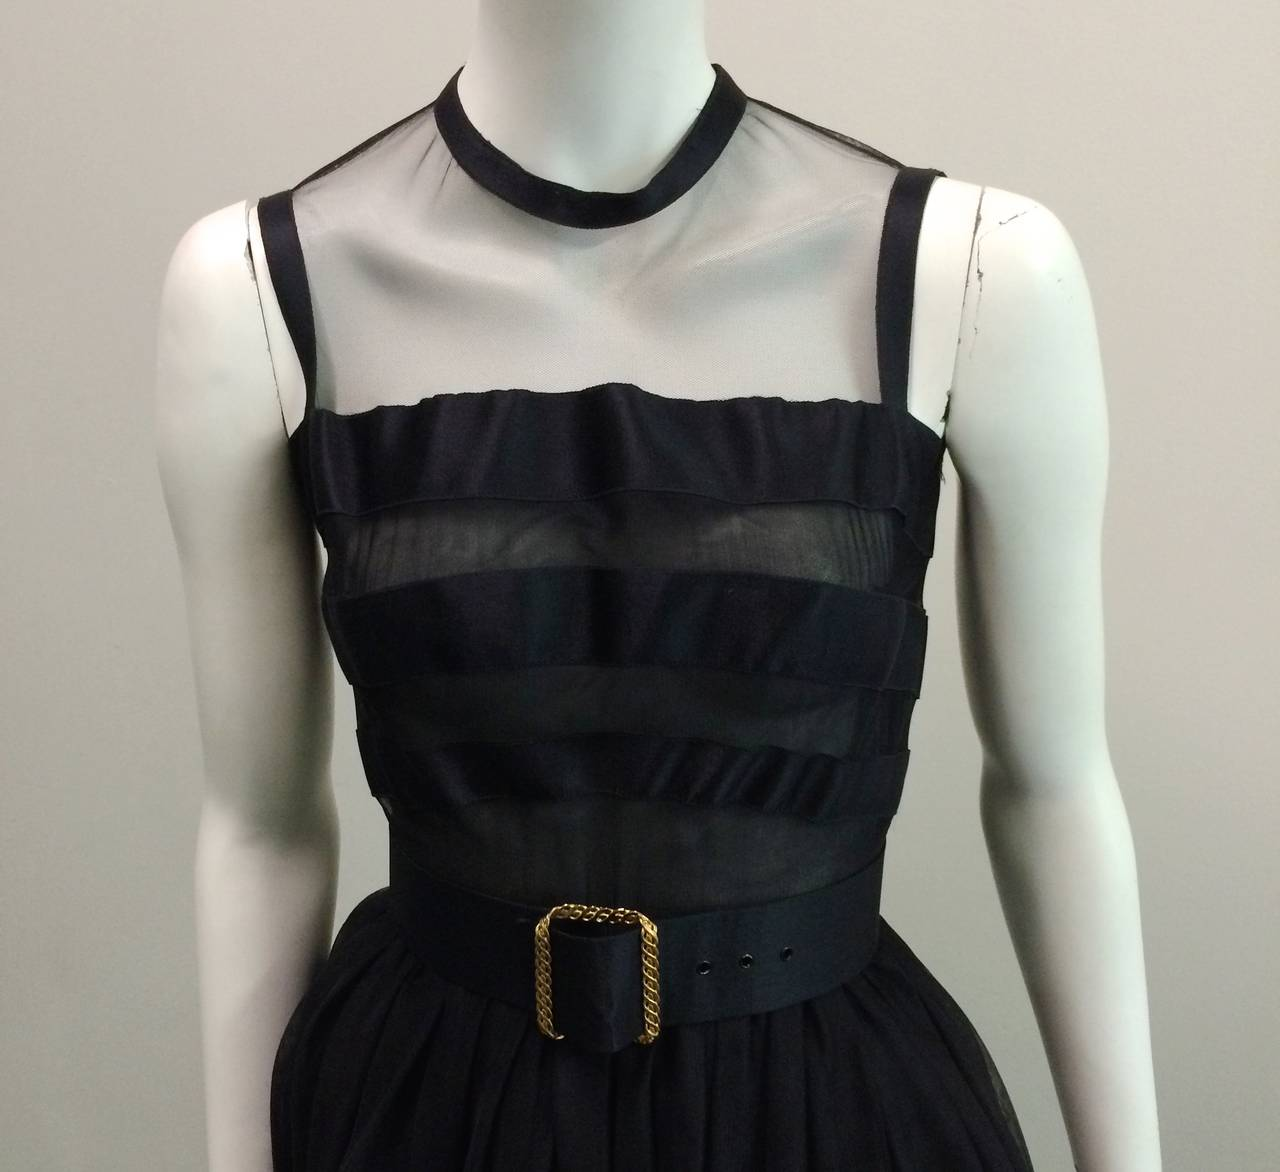 Chanel 1985 silk and tulle ball gown size 0. 3